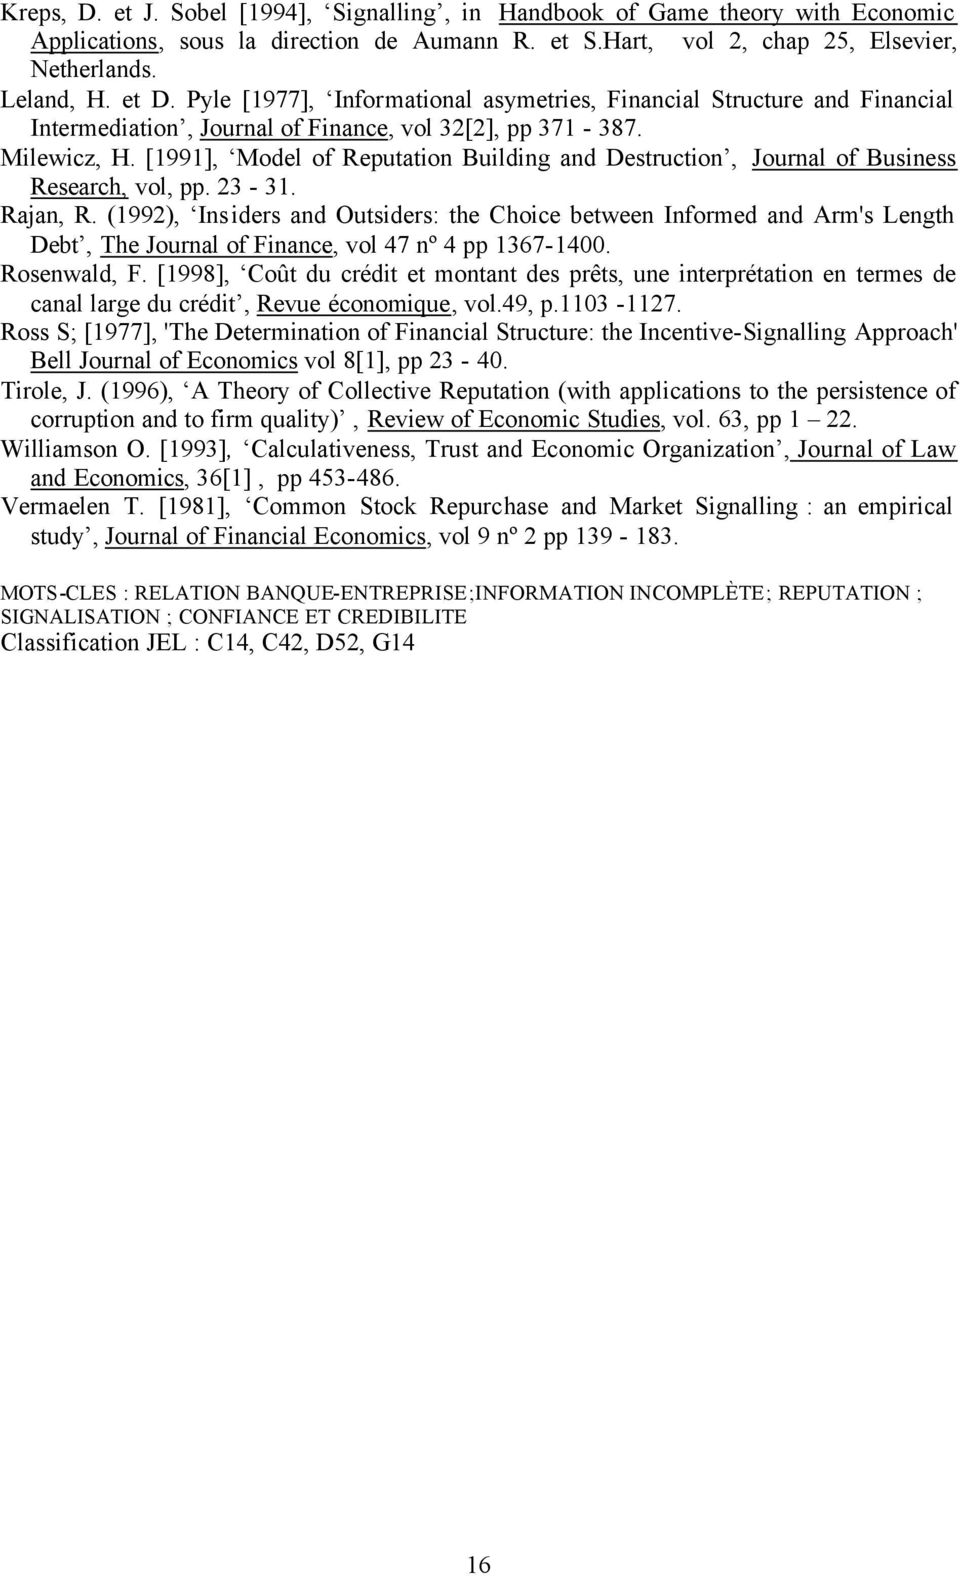 [99], Model of Reputation Building and Destruction, Journal of Business Research, vol, pp. 23-3. Rajan, R.